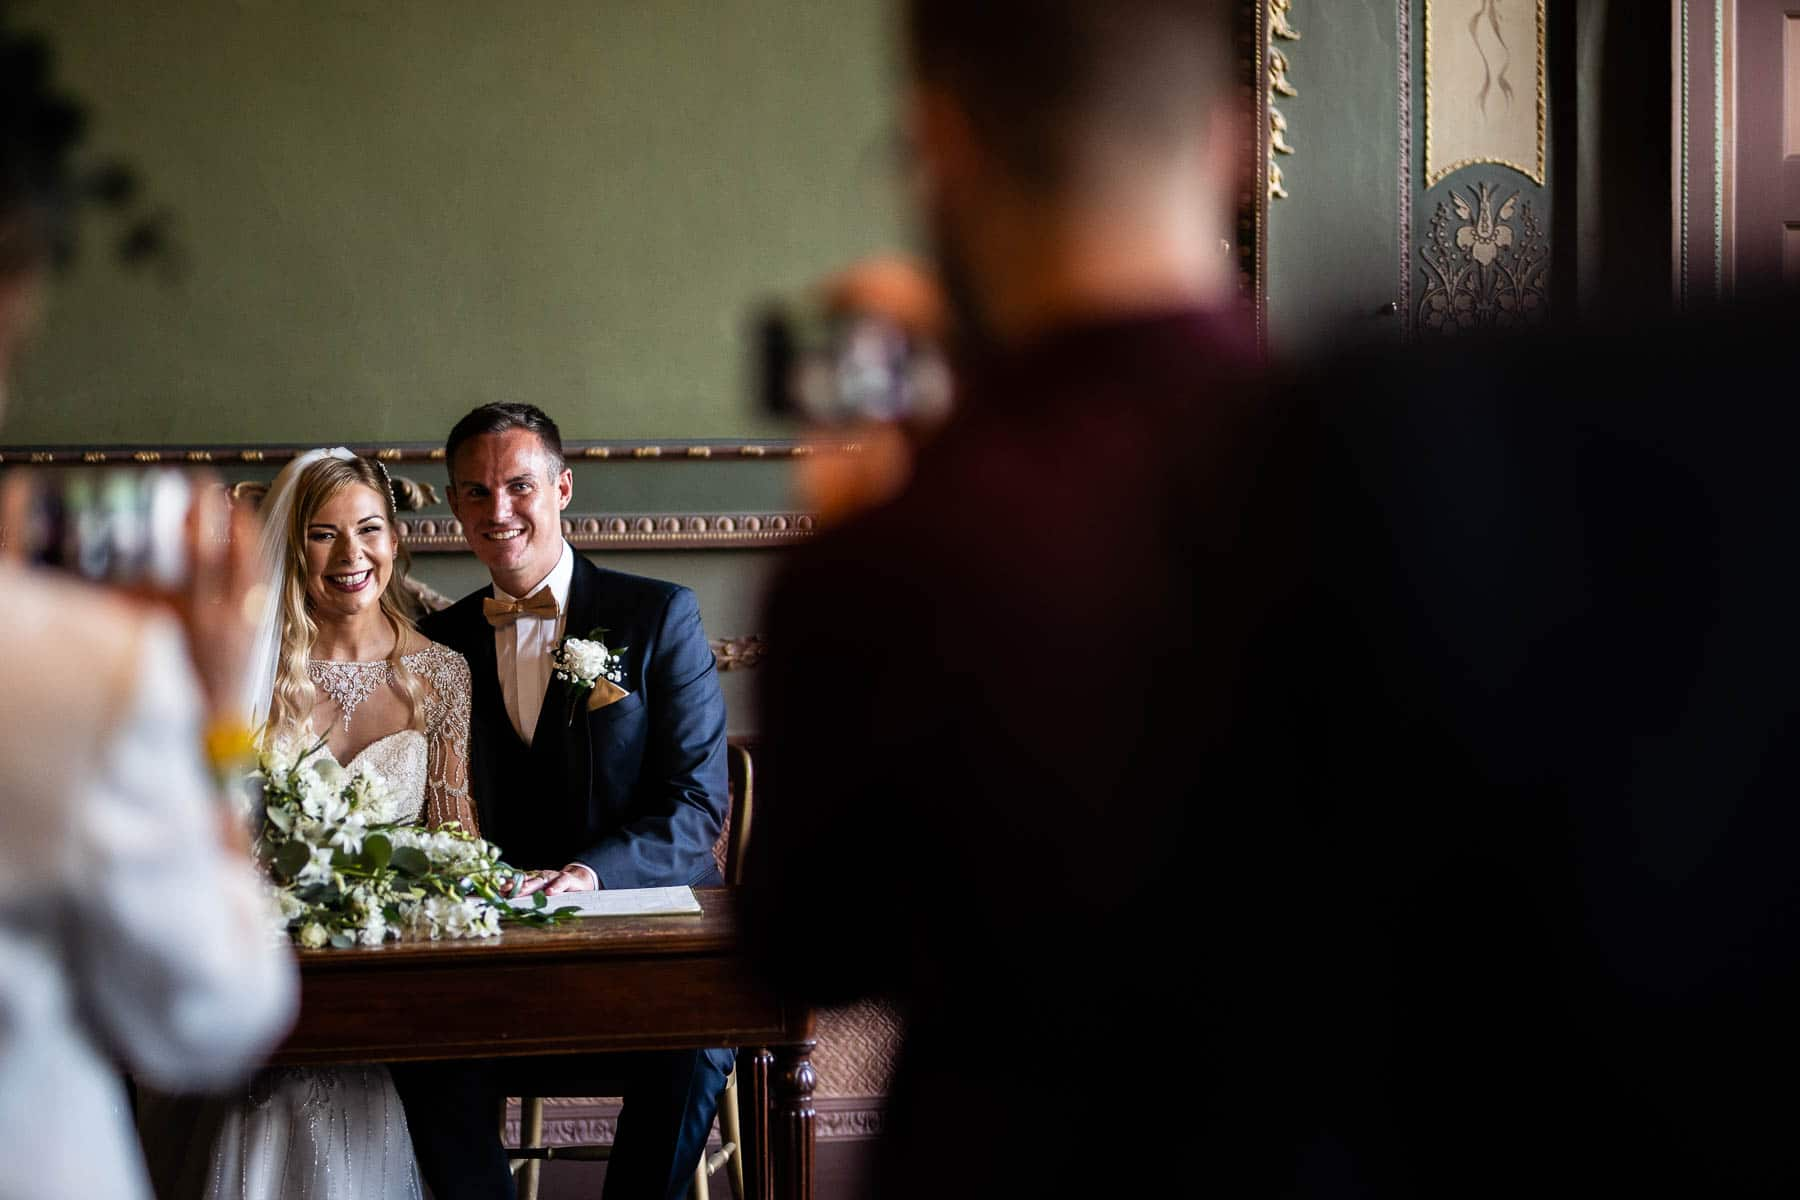 Bride and Groom getting married at Delapre Abbey